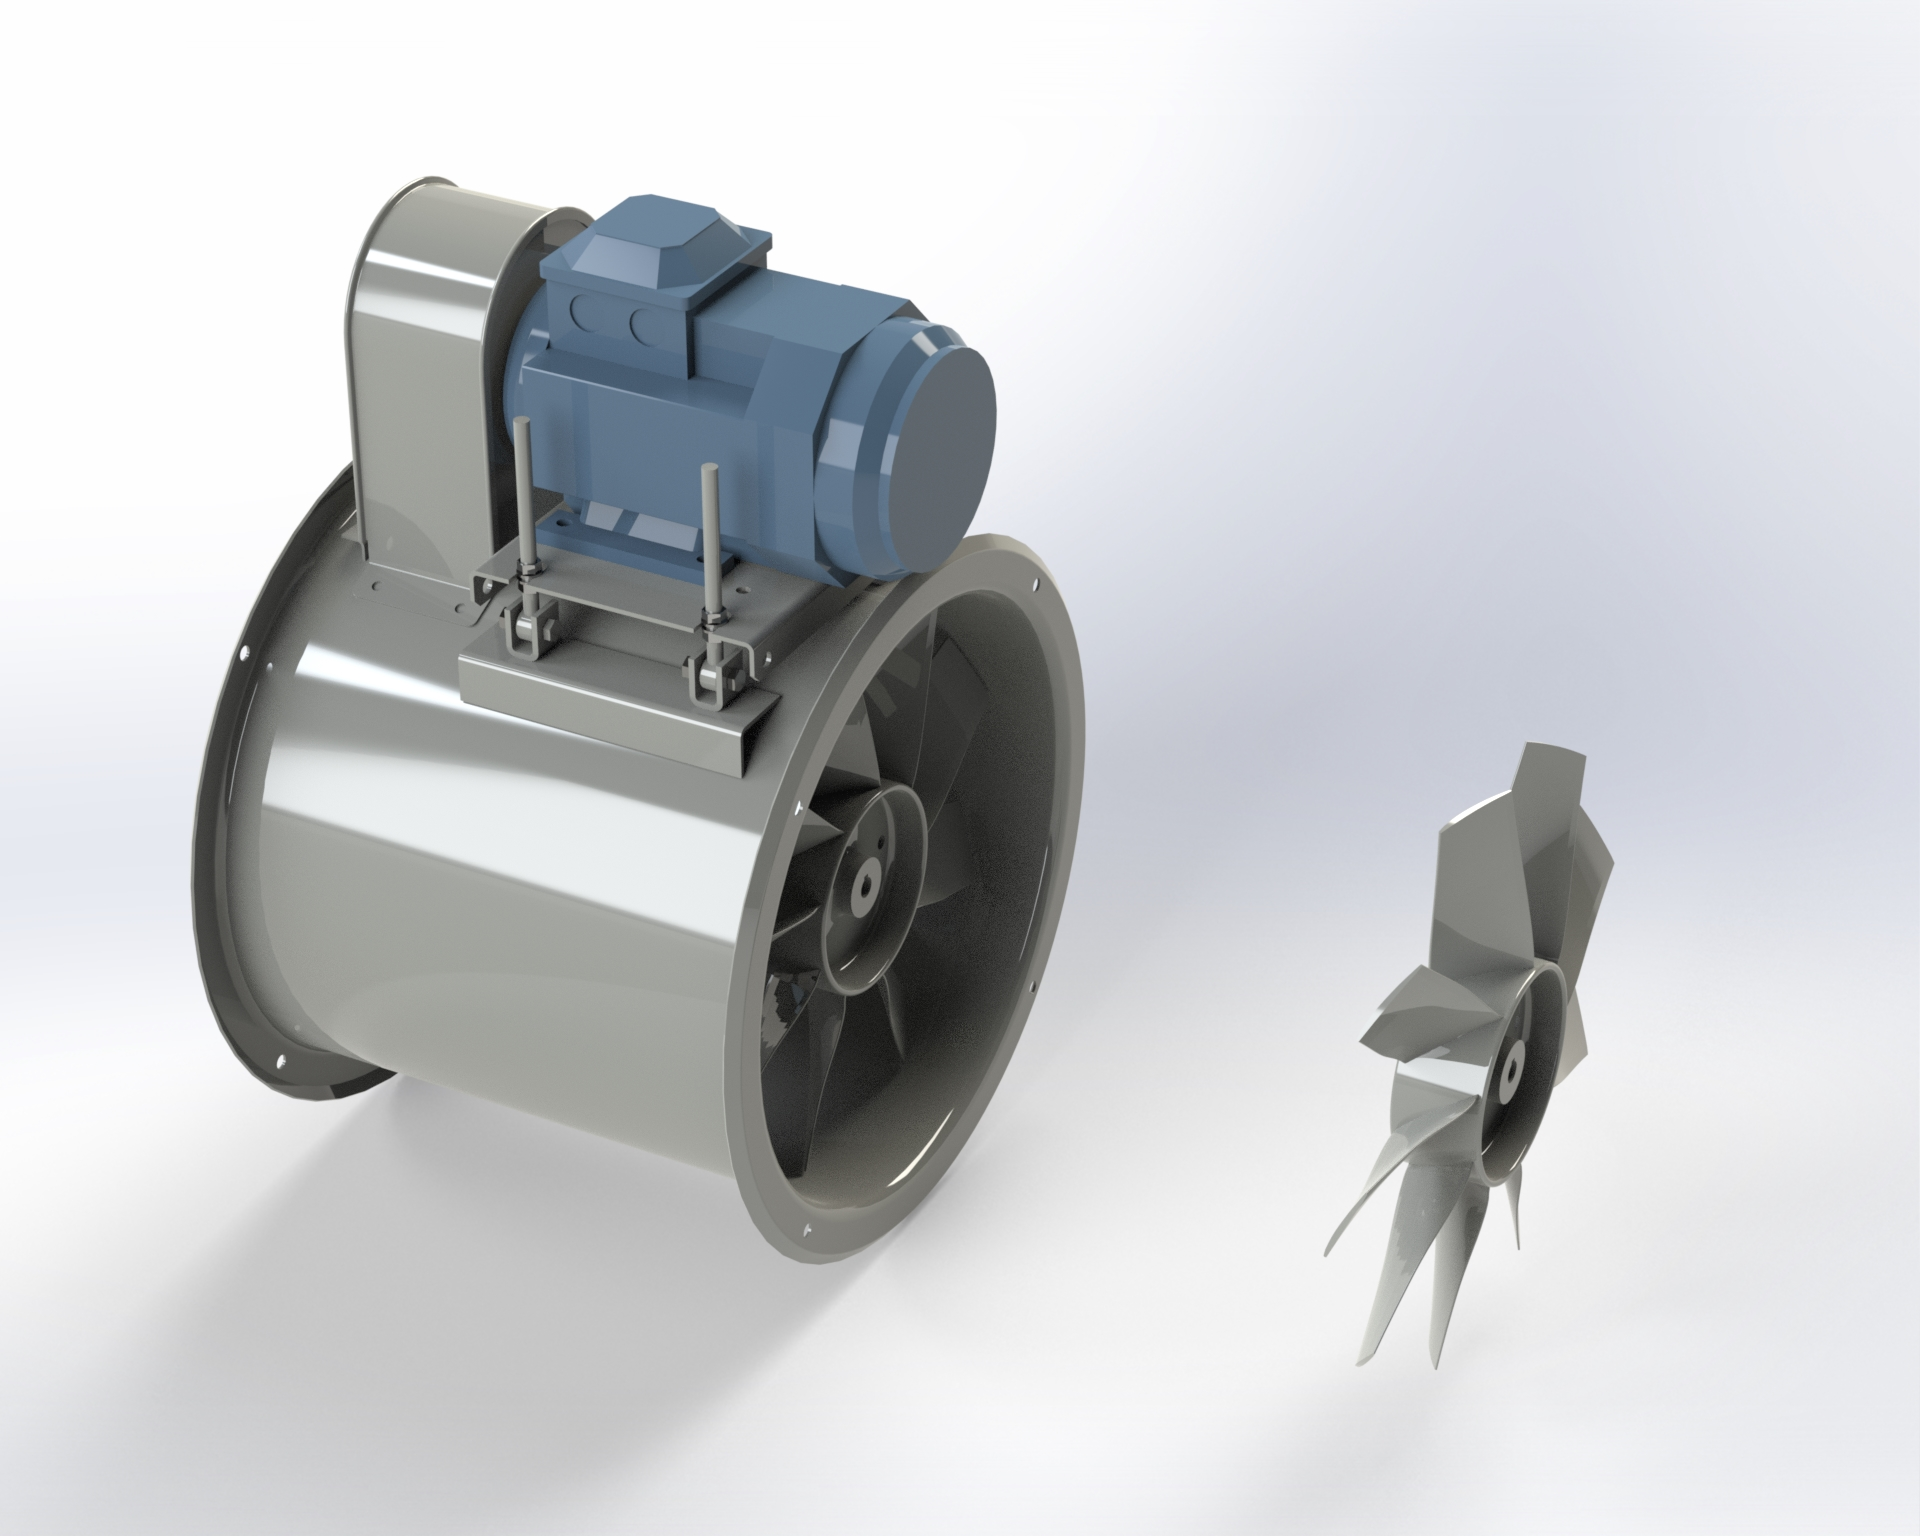 Transmission-drive axial-flow fan with light alloy die-cast impeller with wing-profile blades.